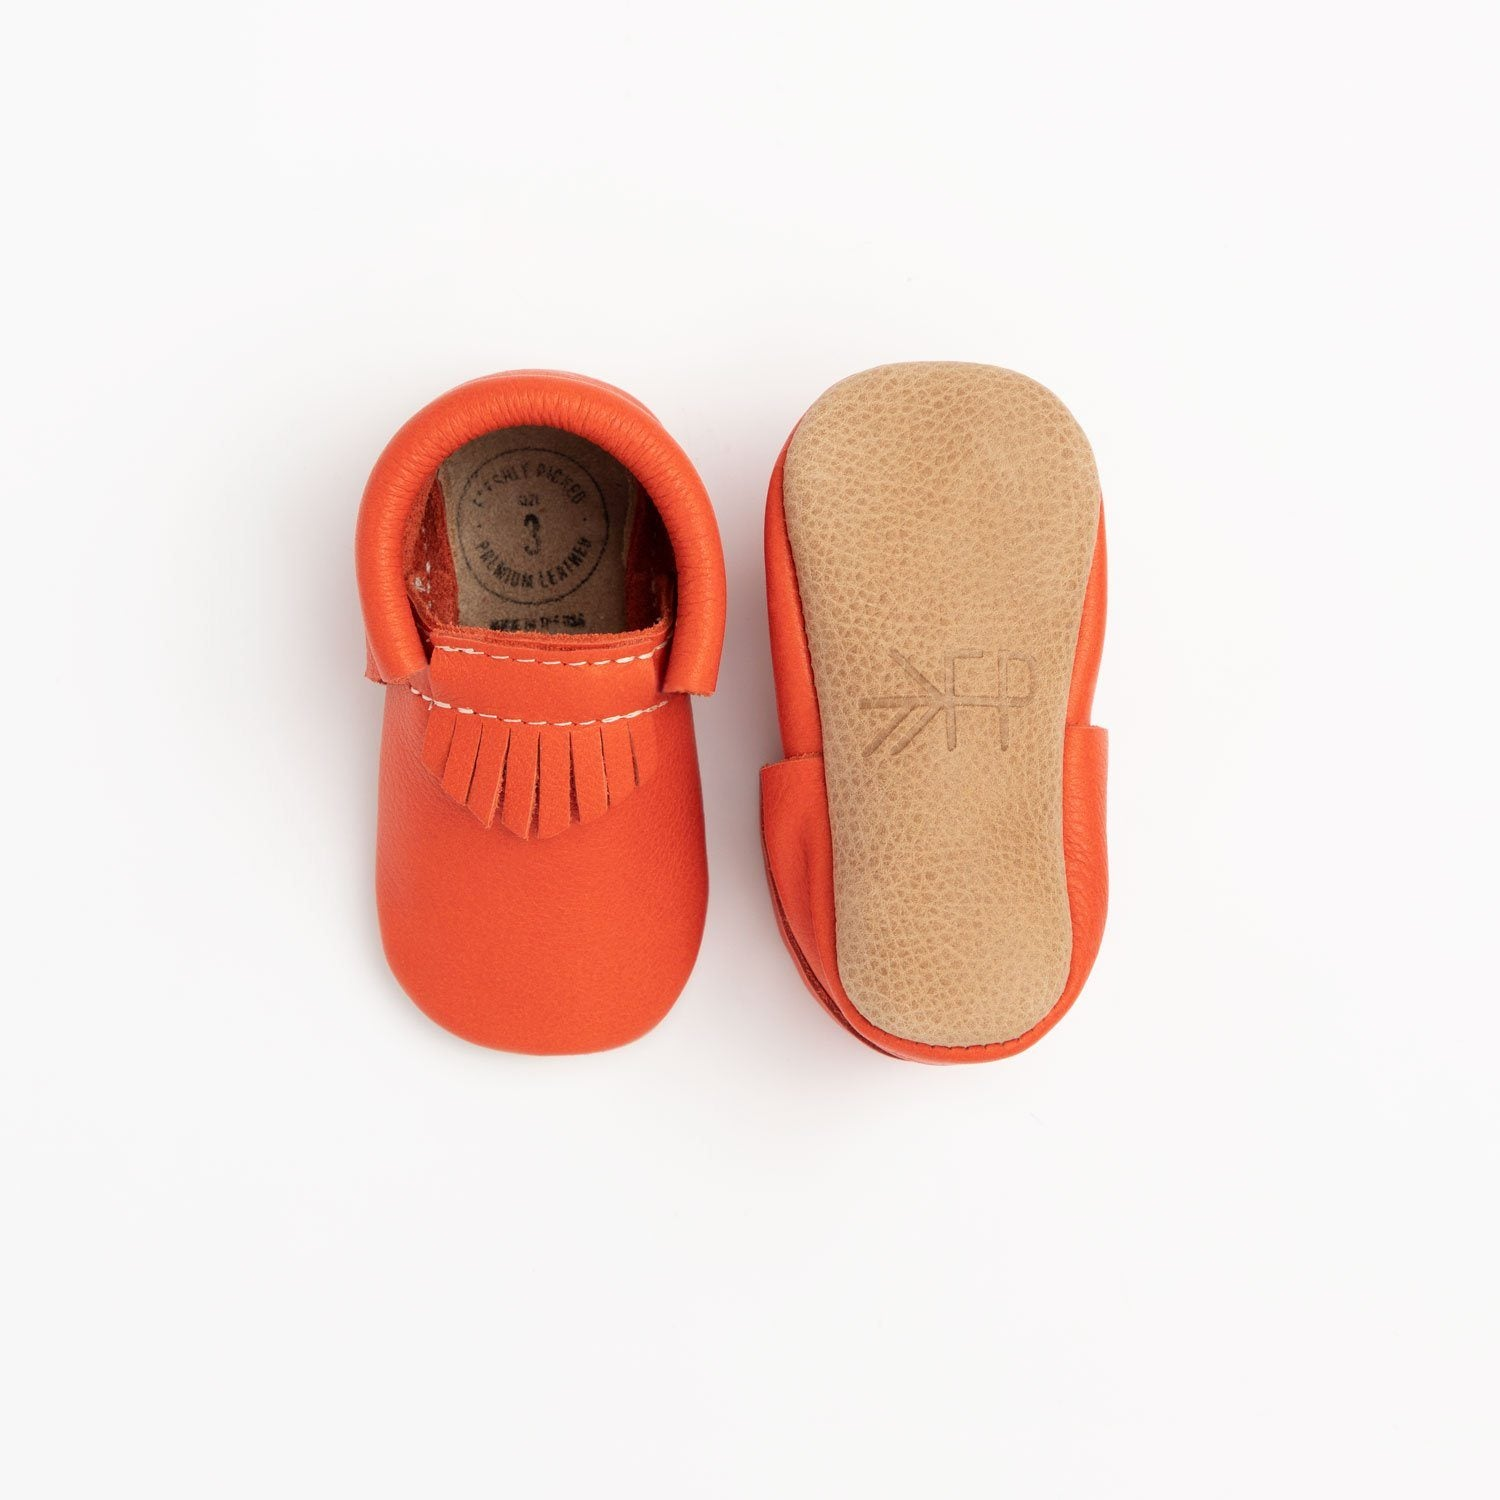 Maple City Mocc City Moccs Soft Soles